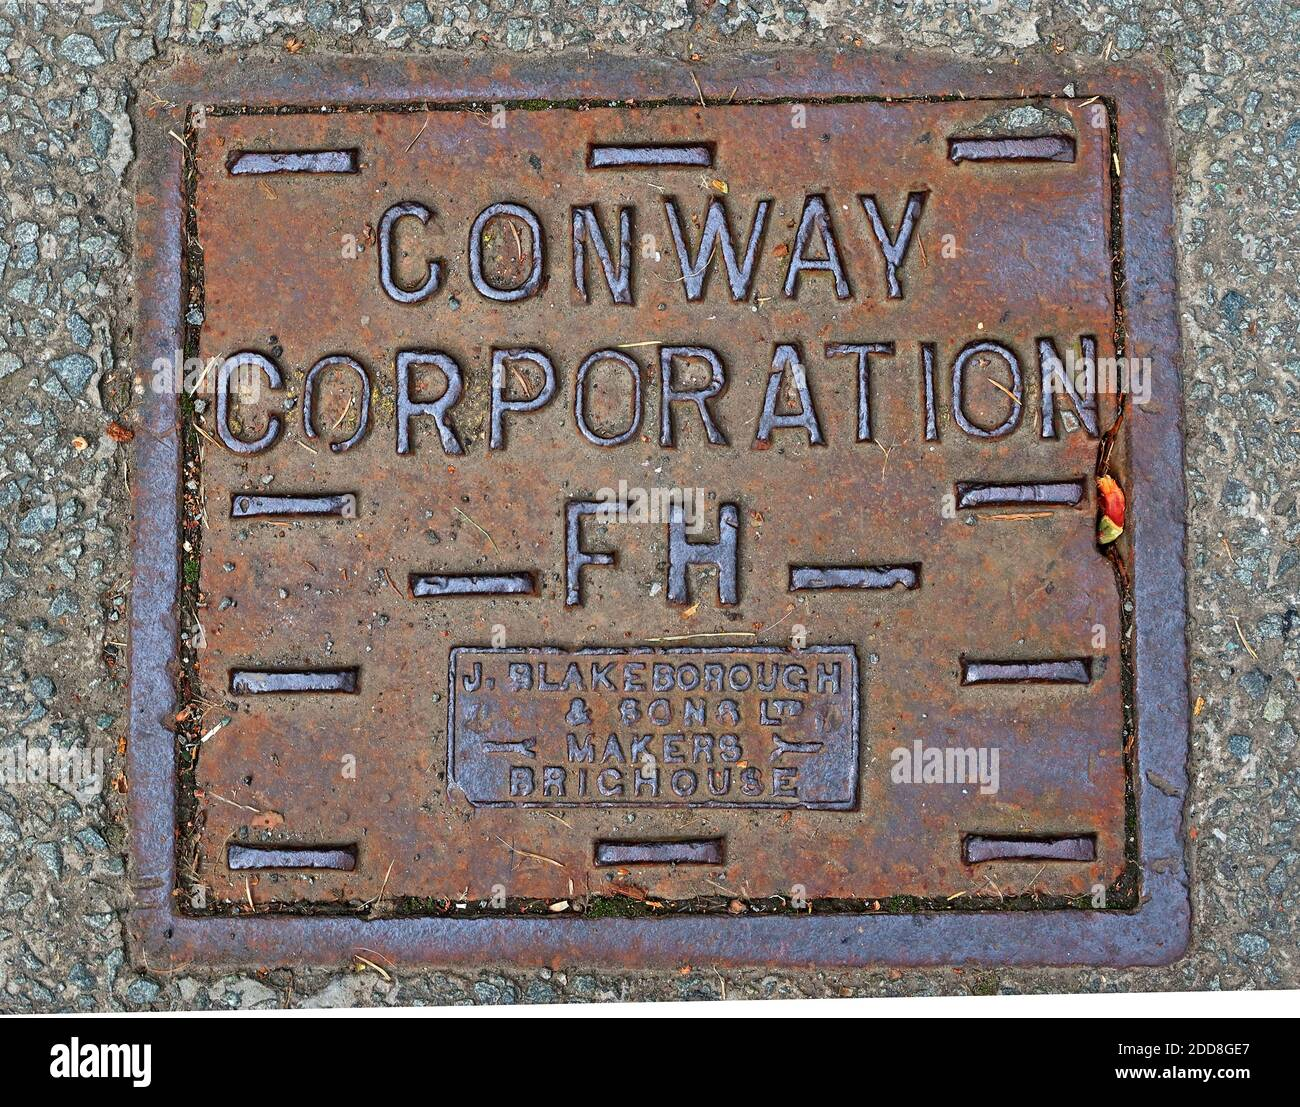 GoTonySmith,Hotpixuk,@Hotpixuk,FH,English Spelling,Welsh Spelling,Wales,North Wales,corporation,steel,metal,Blakeborough,makers Brighouse,spelling,Conway spelling,Caernarvonshire,Sir Gaernarfon,River Conwy,Conwy County Borough,Conway County Borough,Welsh language,historic,name,history